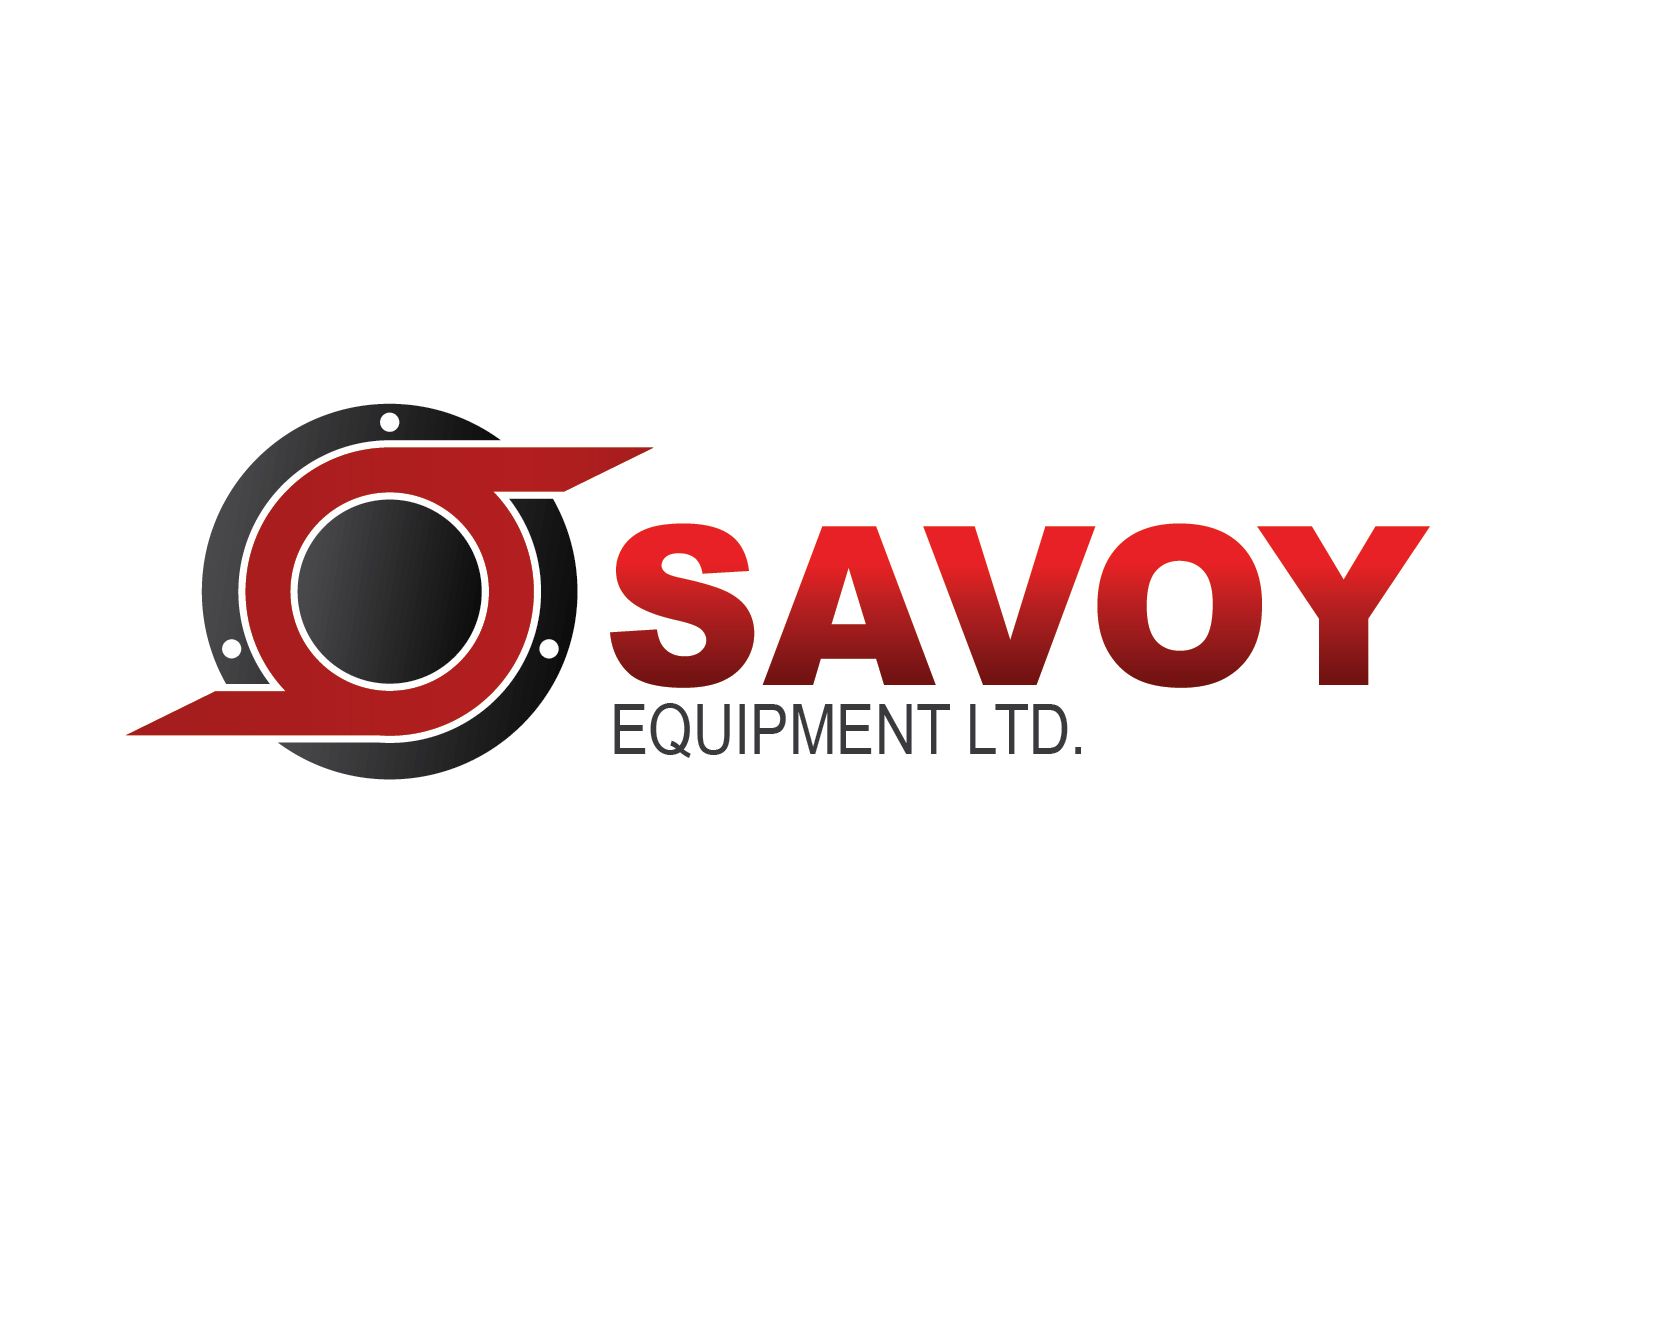 Logo Design by Jesus Emmanuel GAbriel - Entry No. 18 in the Logo Design Contest Inspiring Logo Design for Savoy Equipment Ltd..